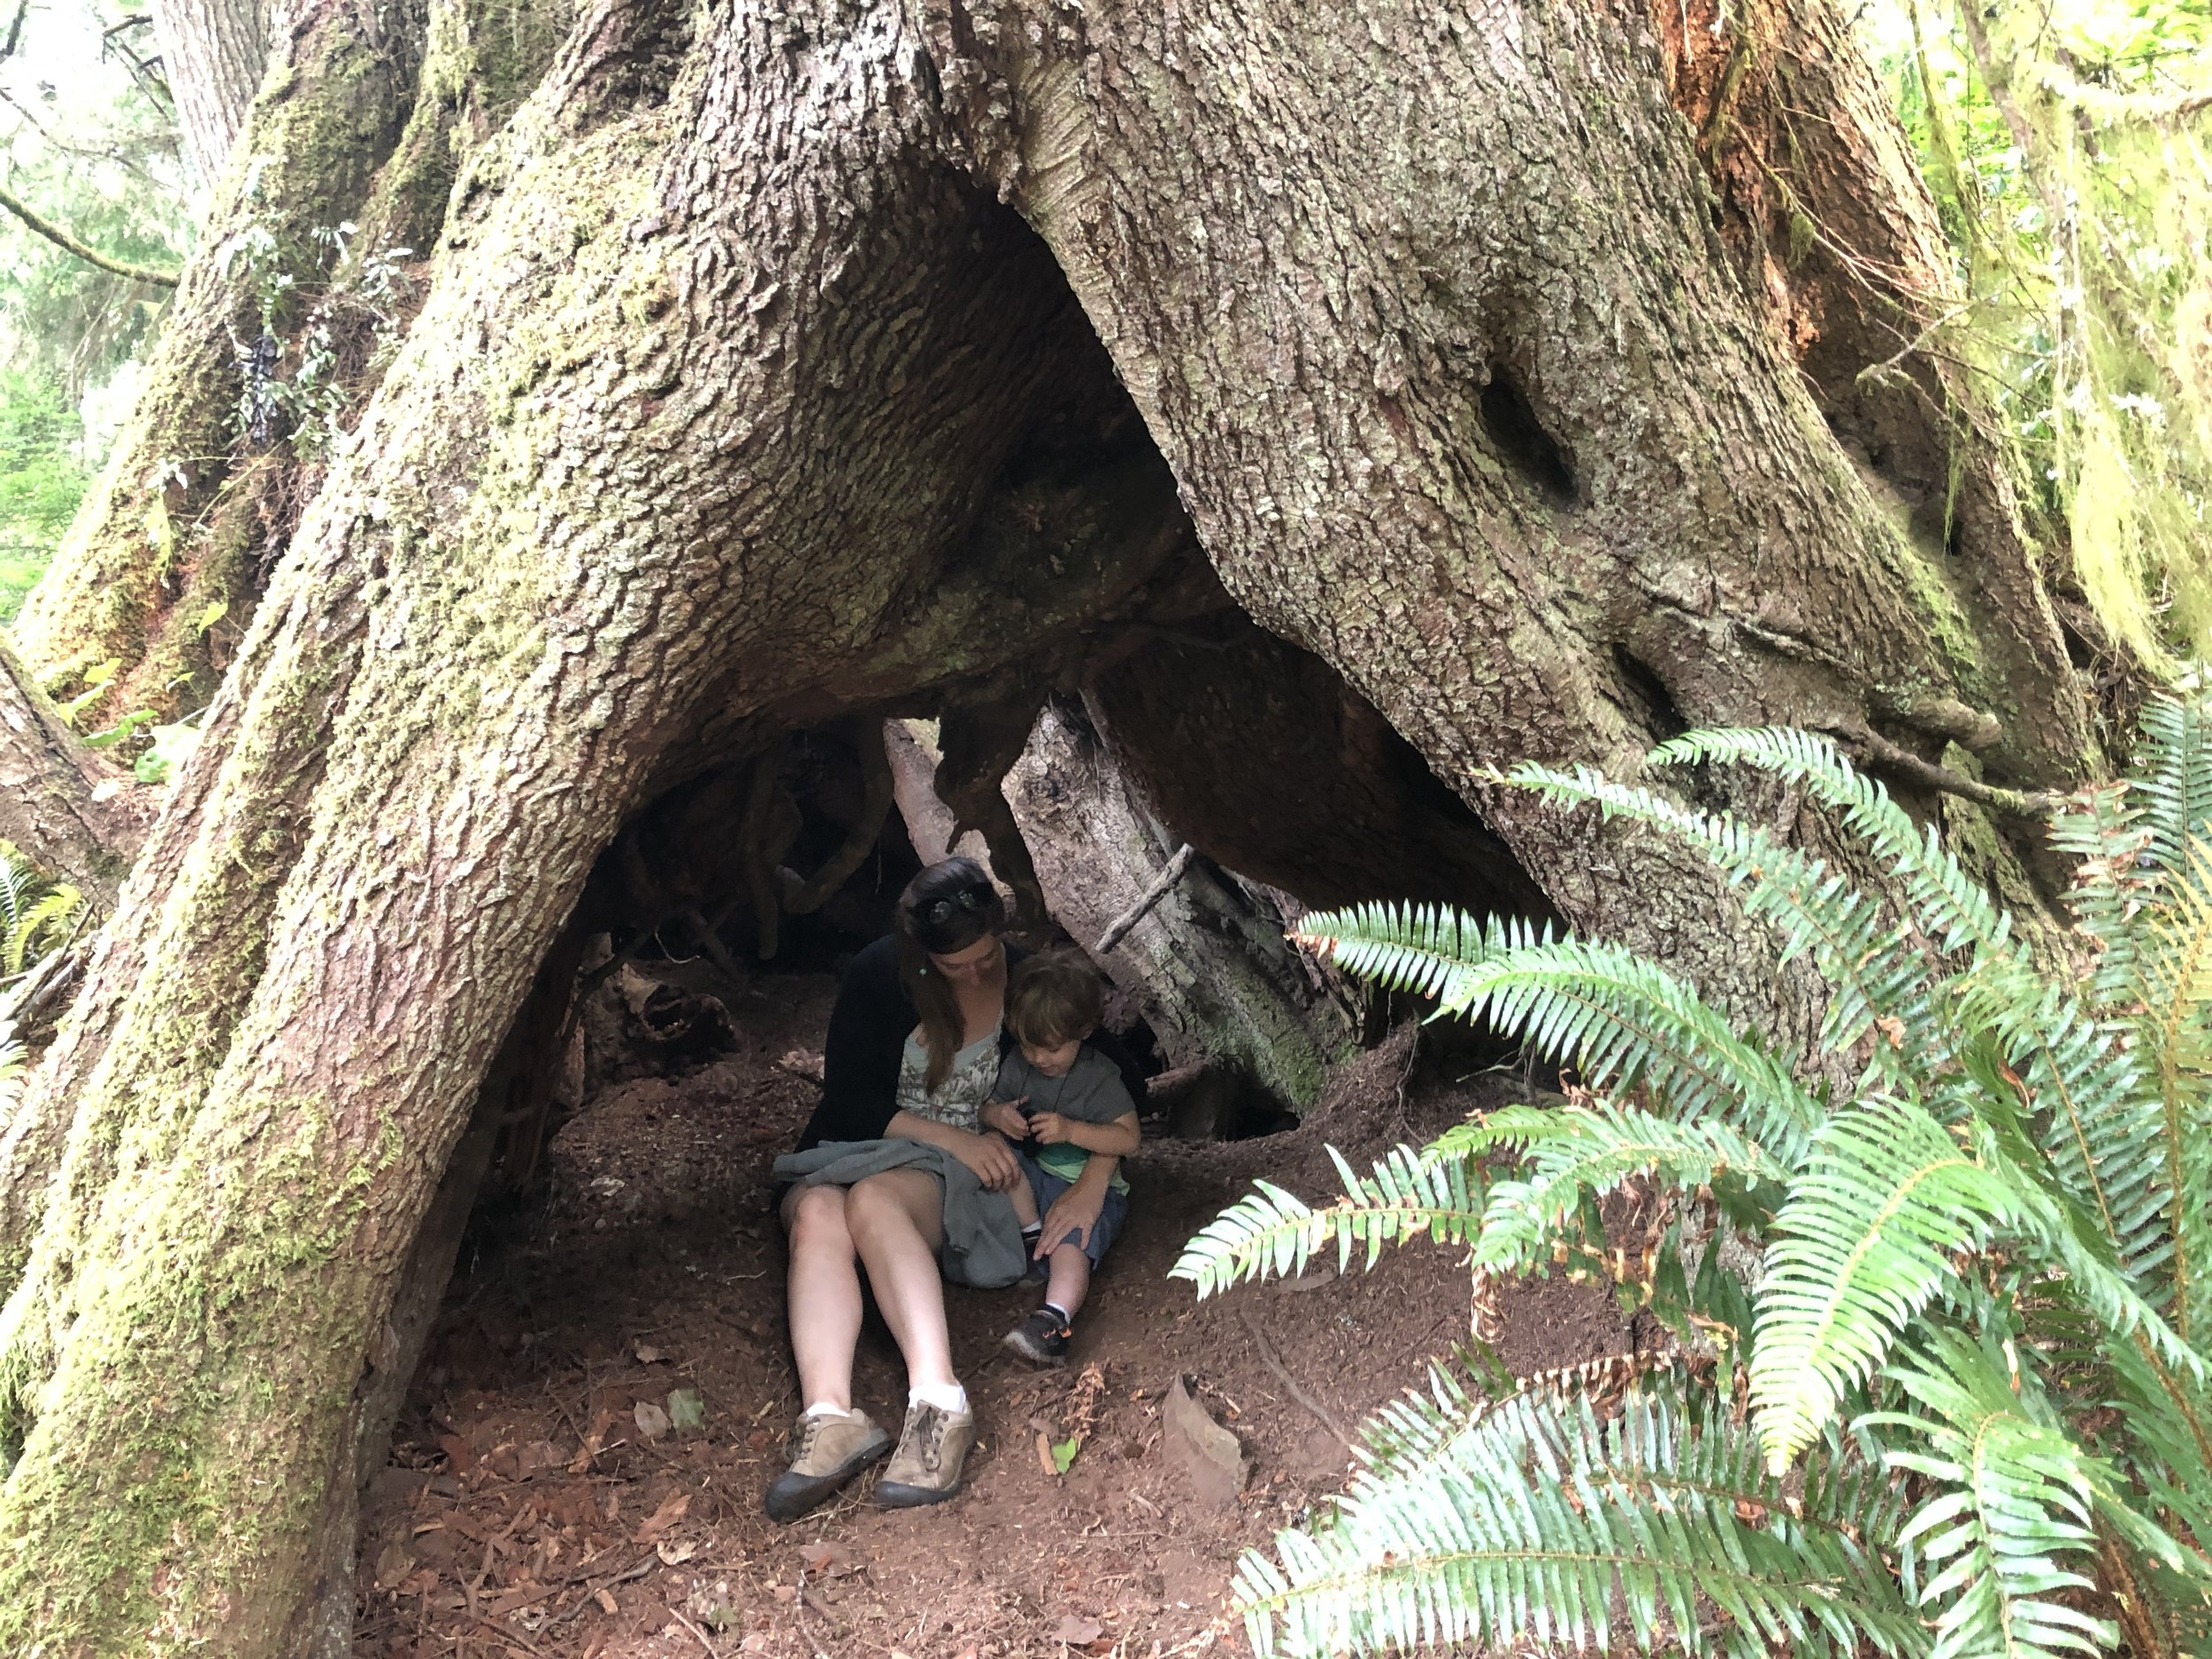 My son & I exploring an old tree in the Pacific Northwest coastal woods.